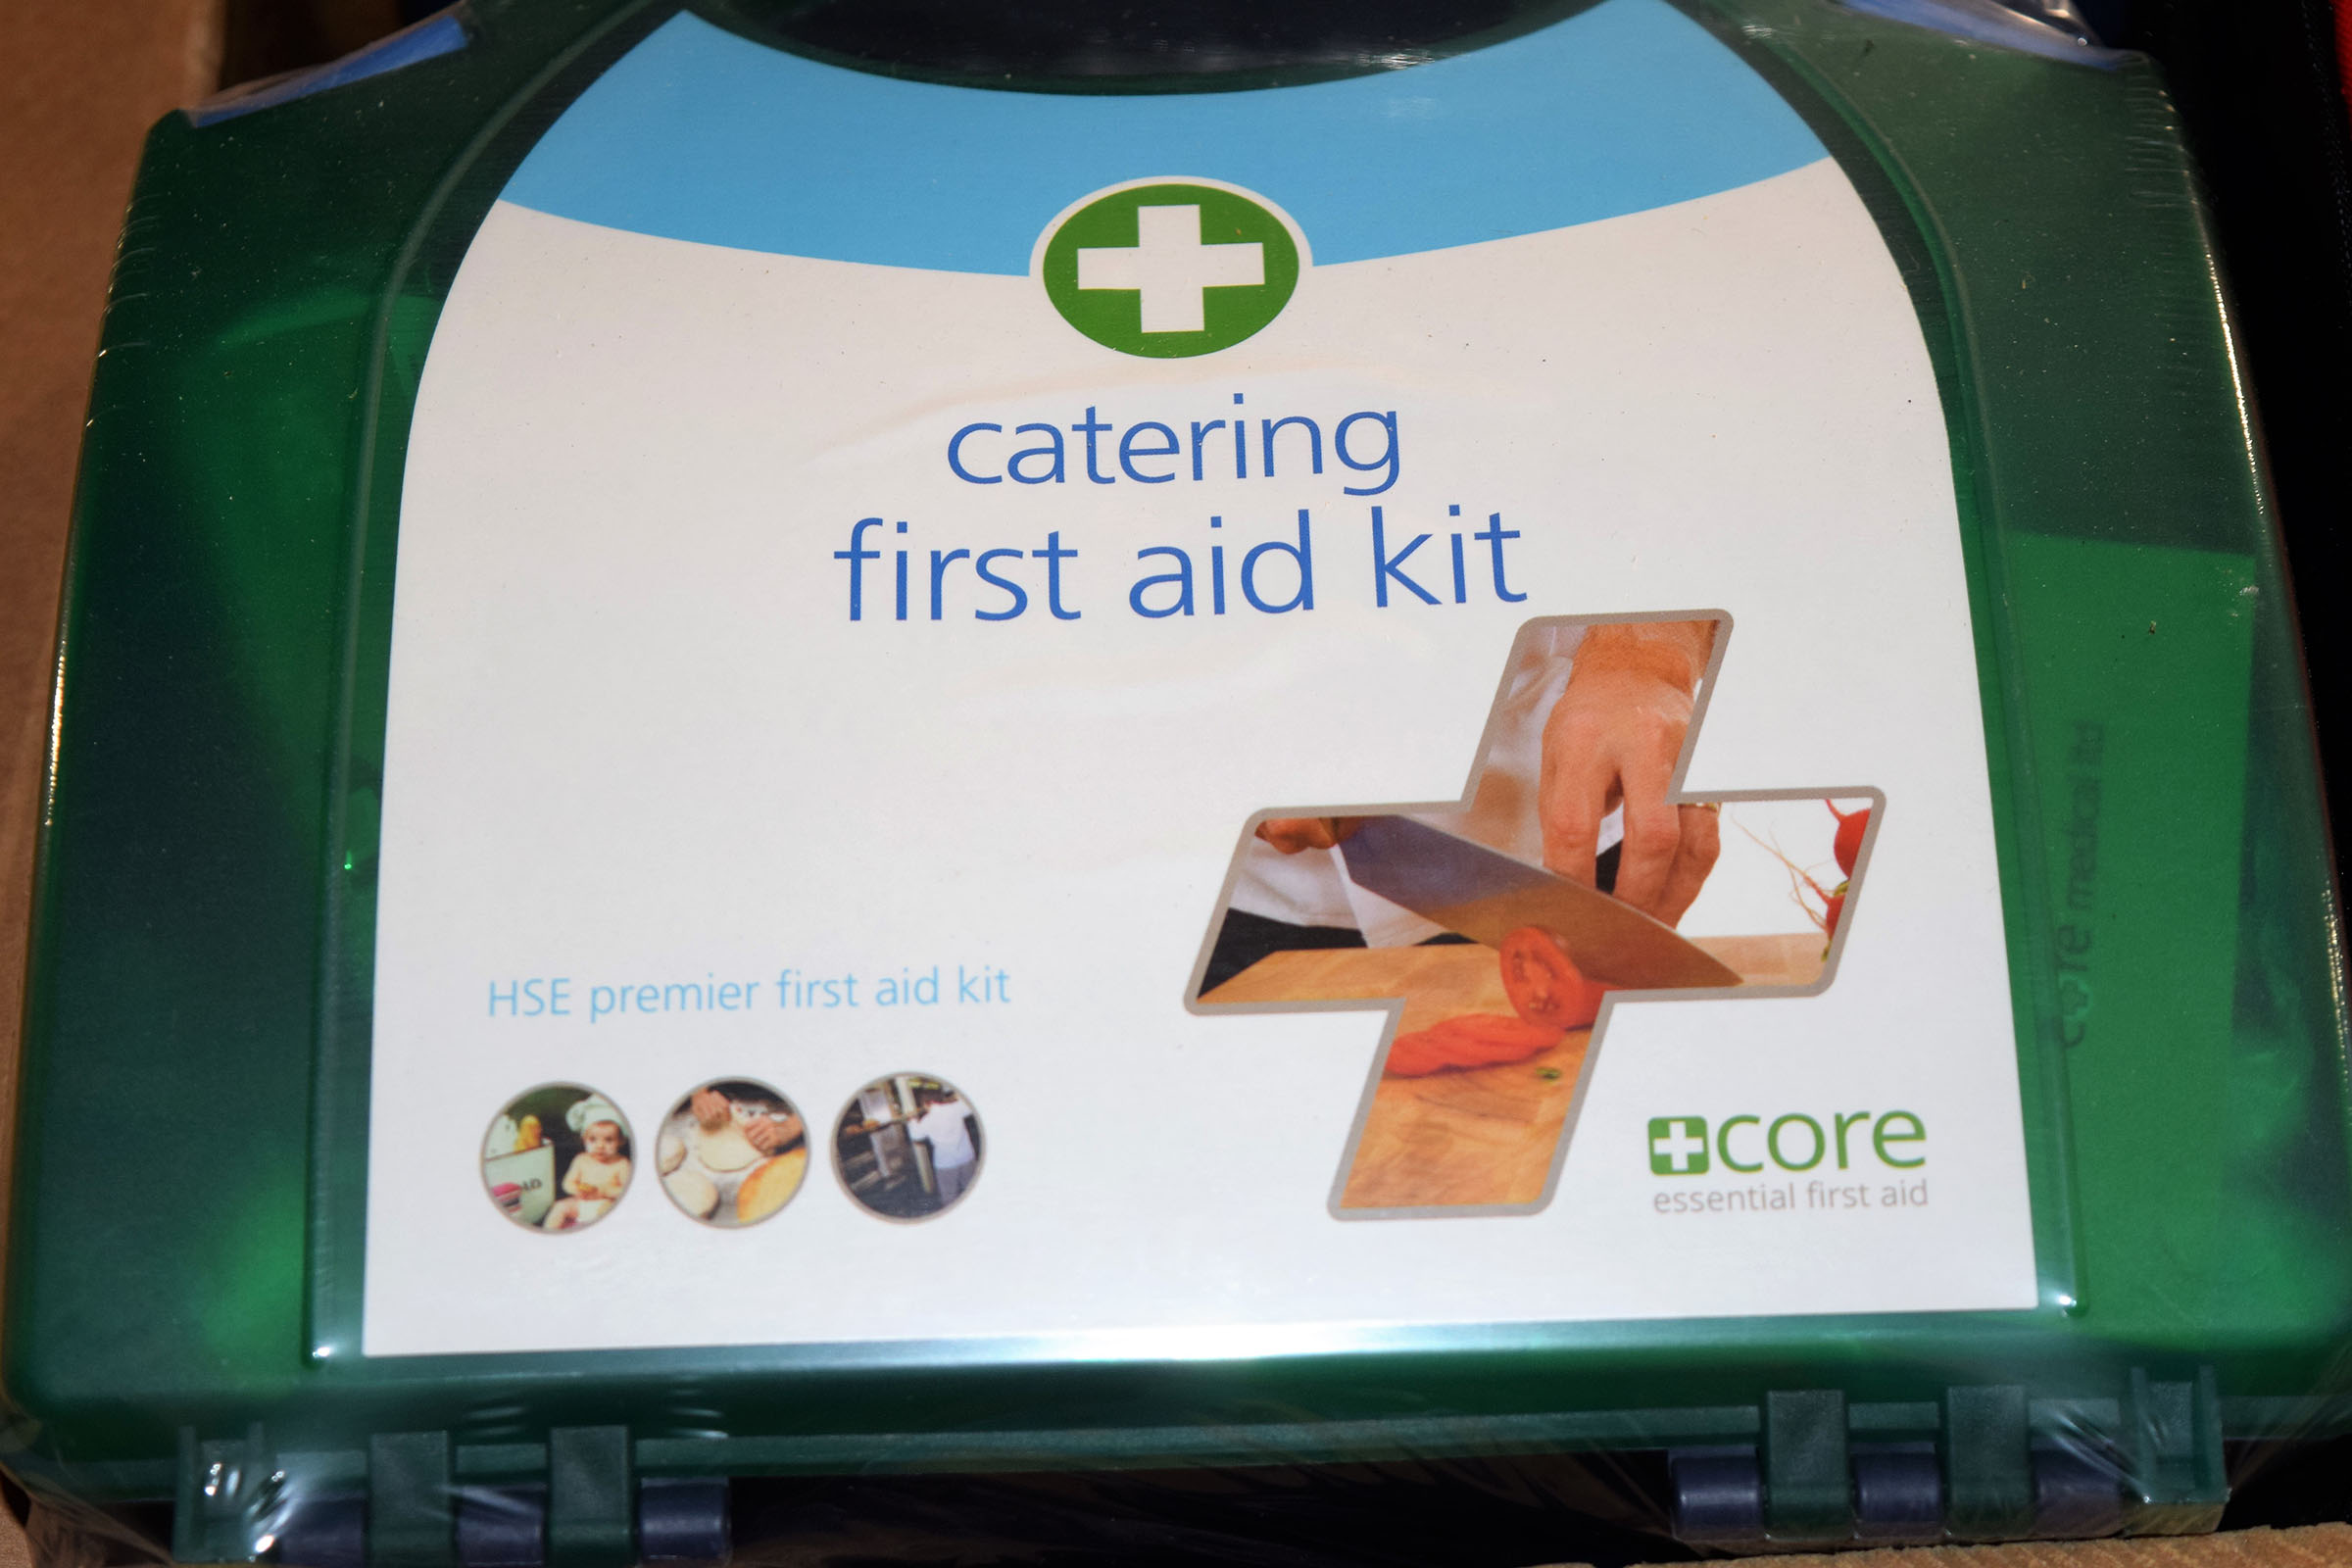 Catering First Aid Kit 1 - 10 Employee